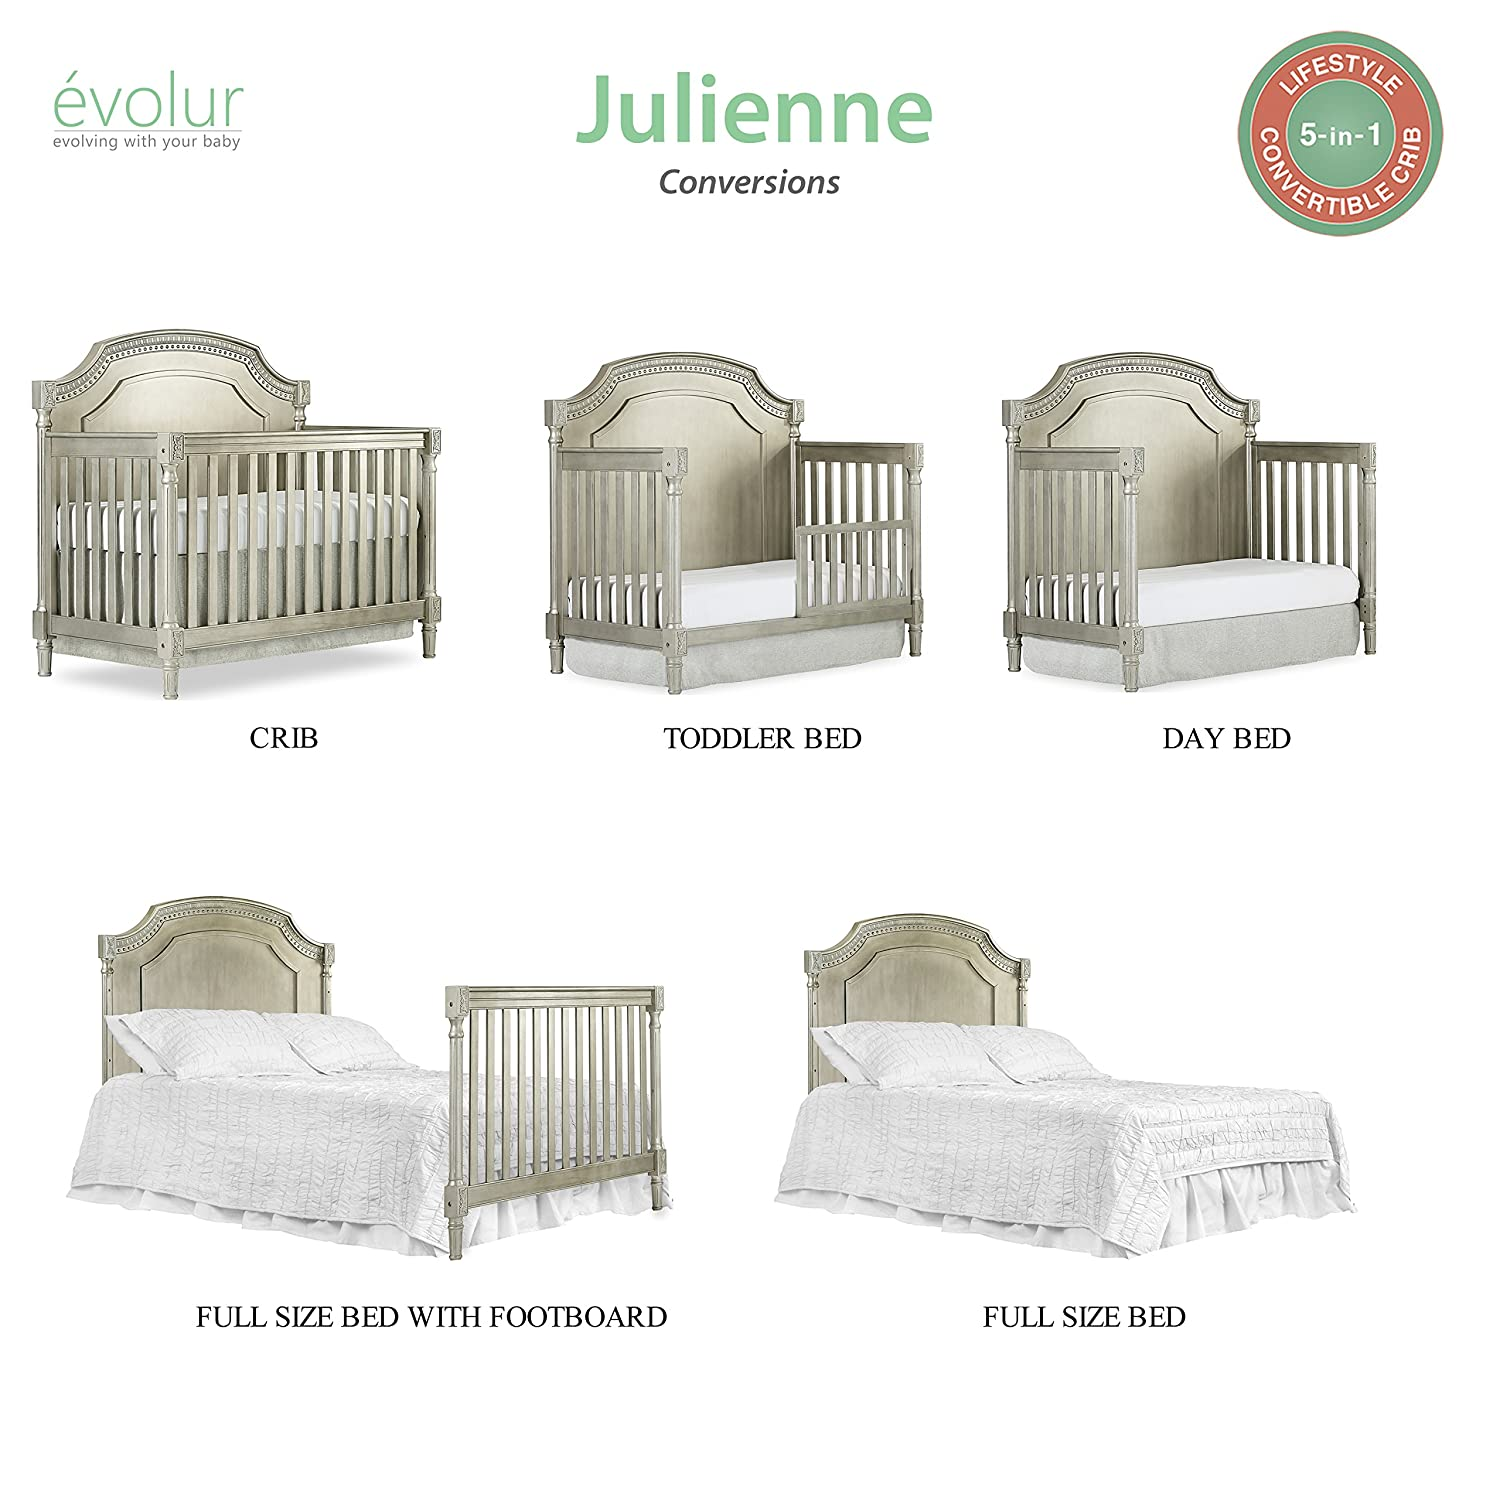 davinci toddler bed conversion instructions